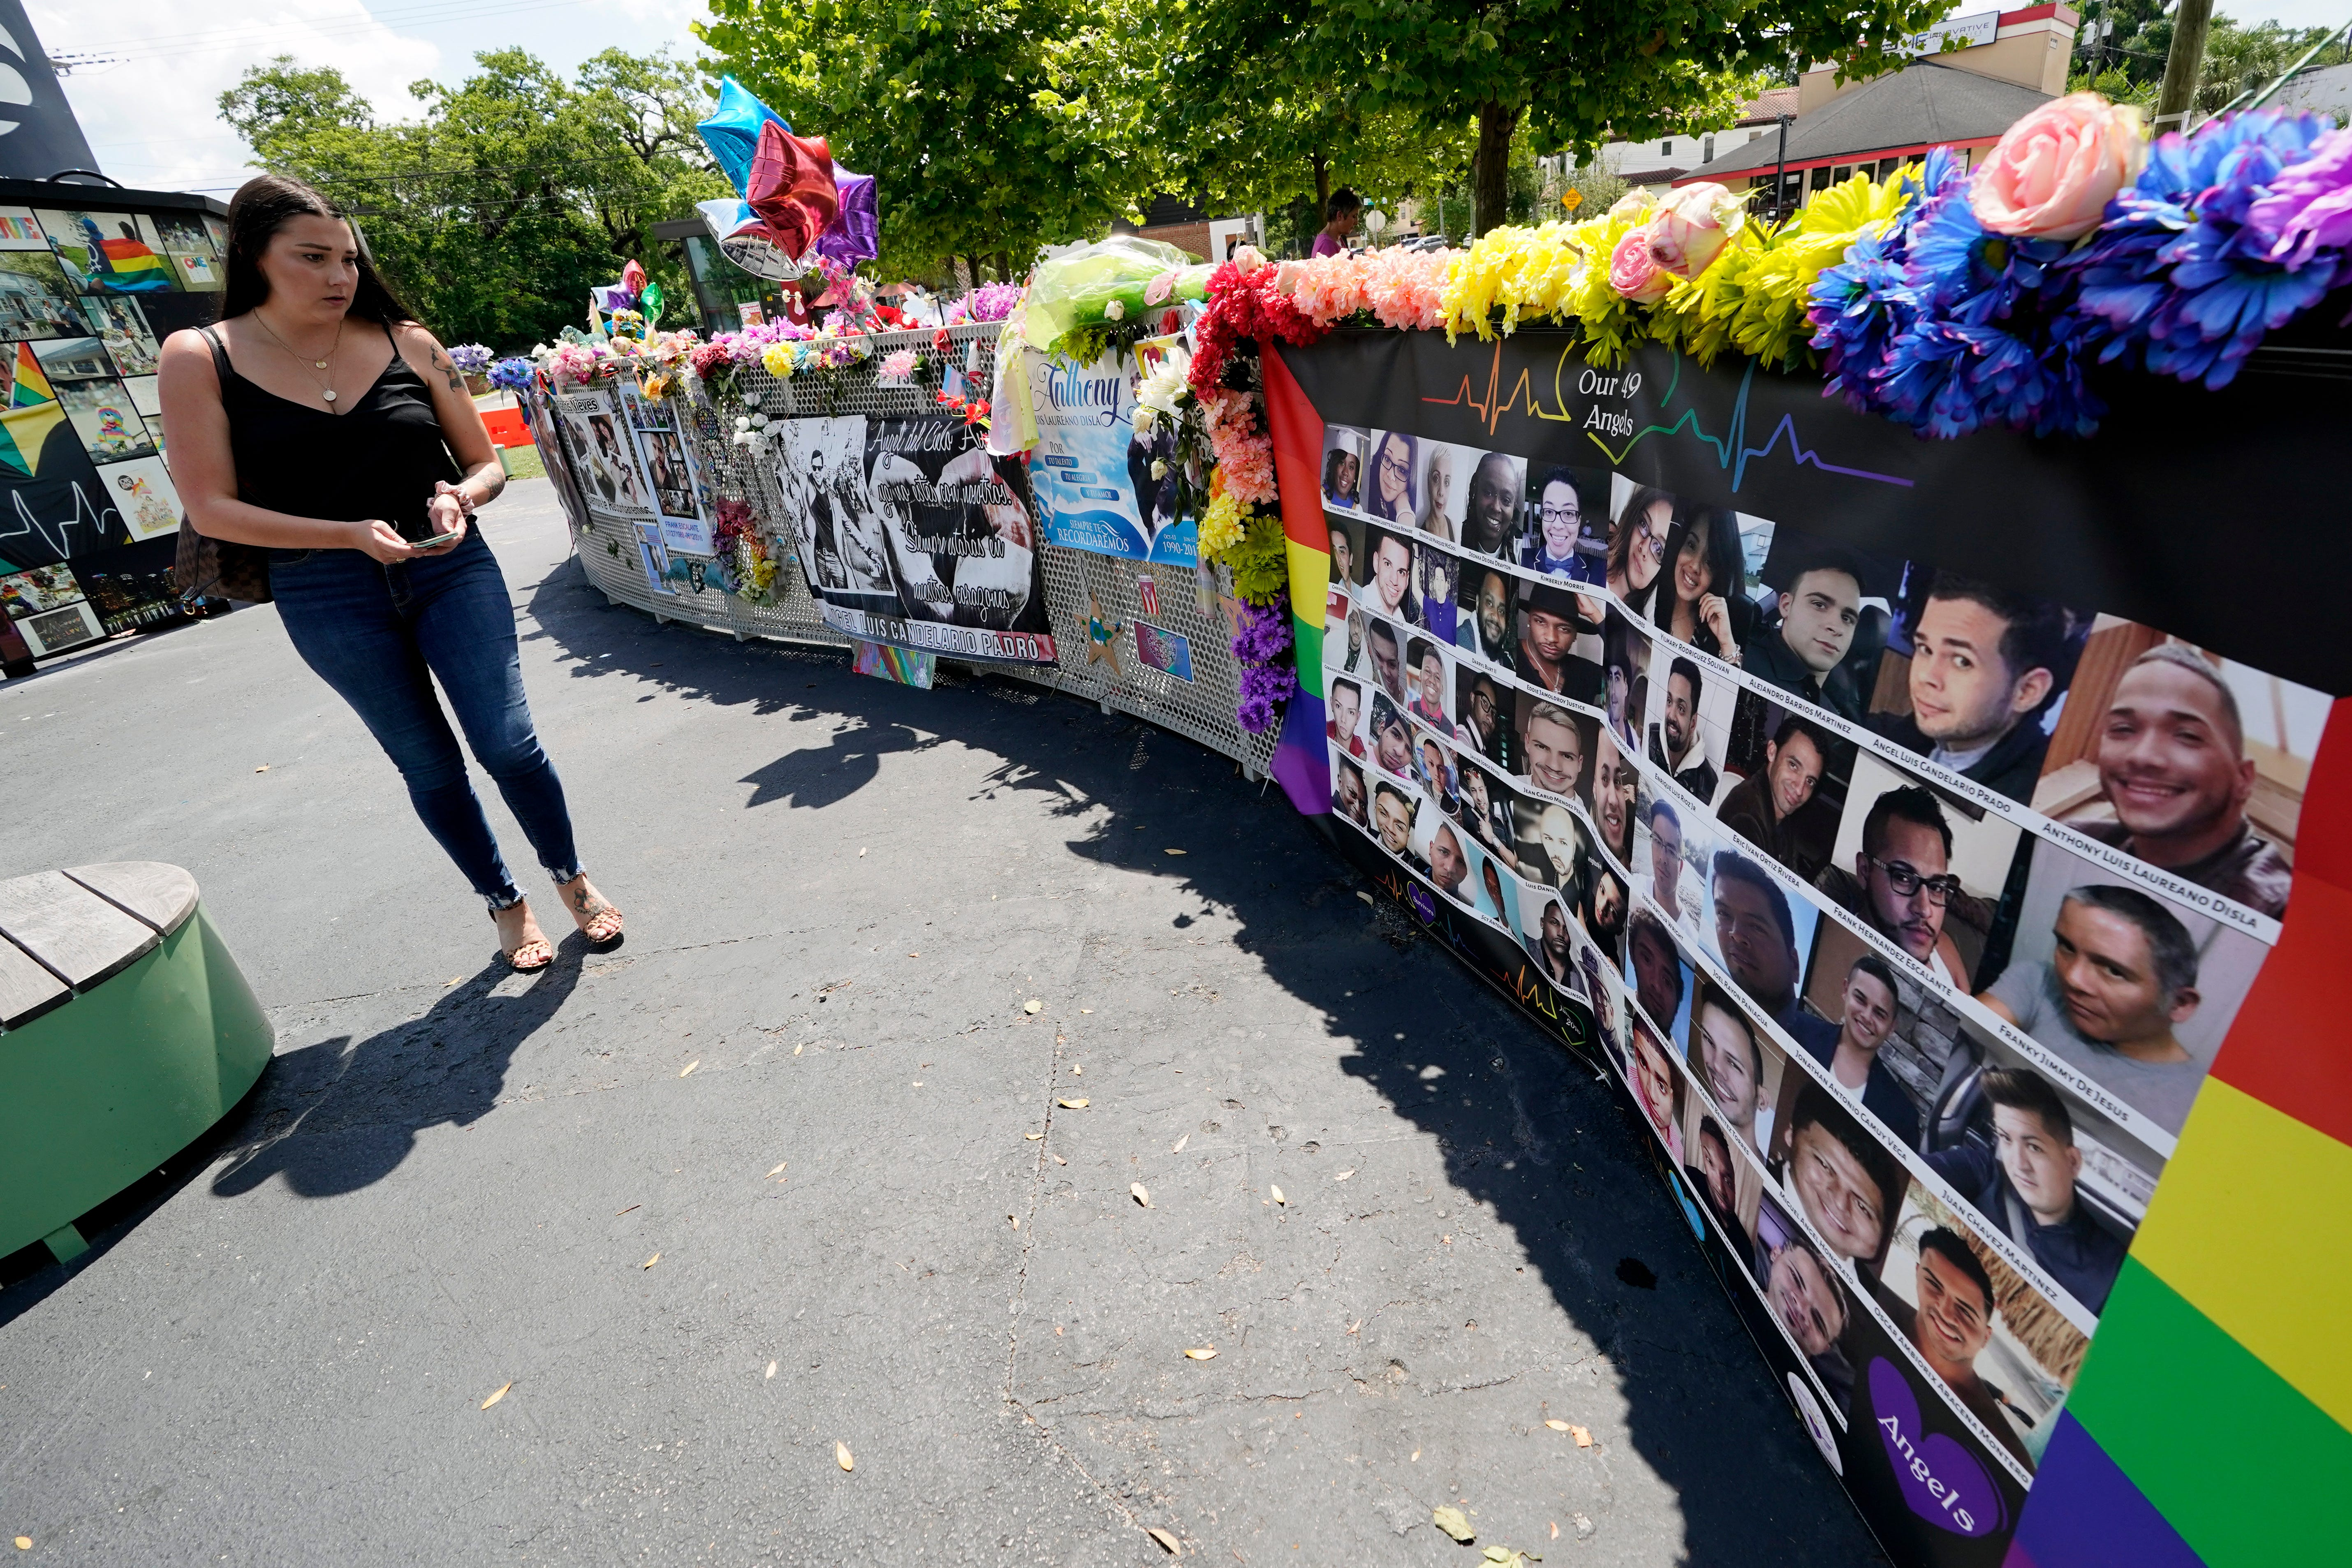 Victims of Pulse nightclub massacre remembered 5 years later 2